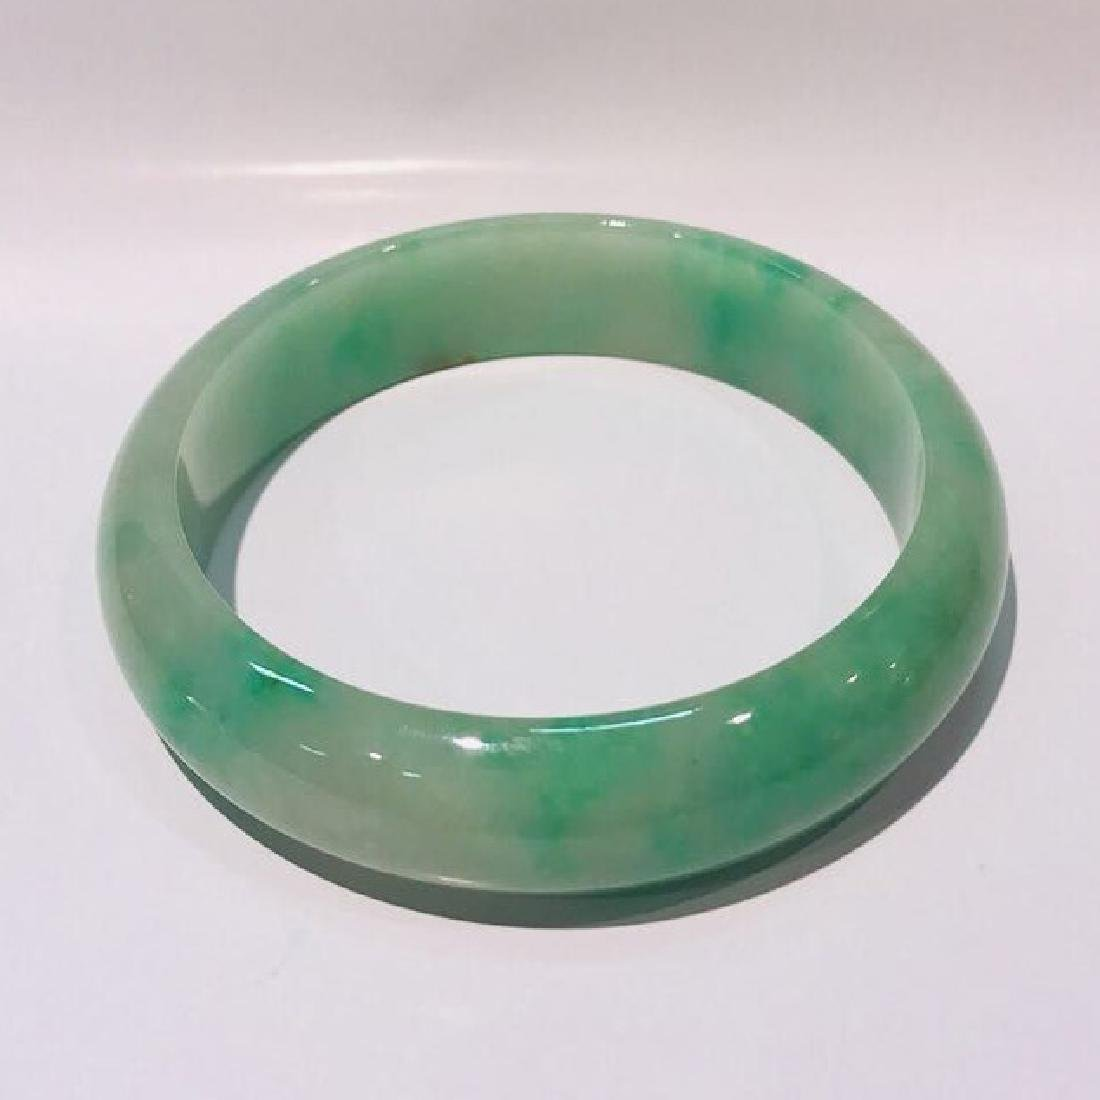 Certified Natural Burma Jadeite Bangle